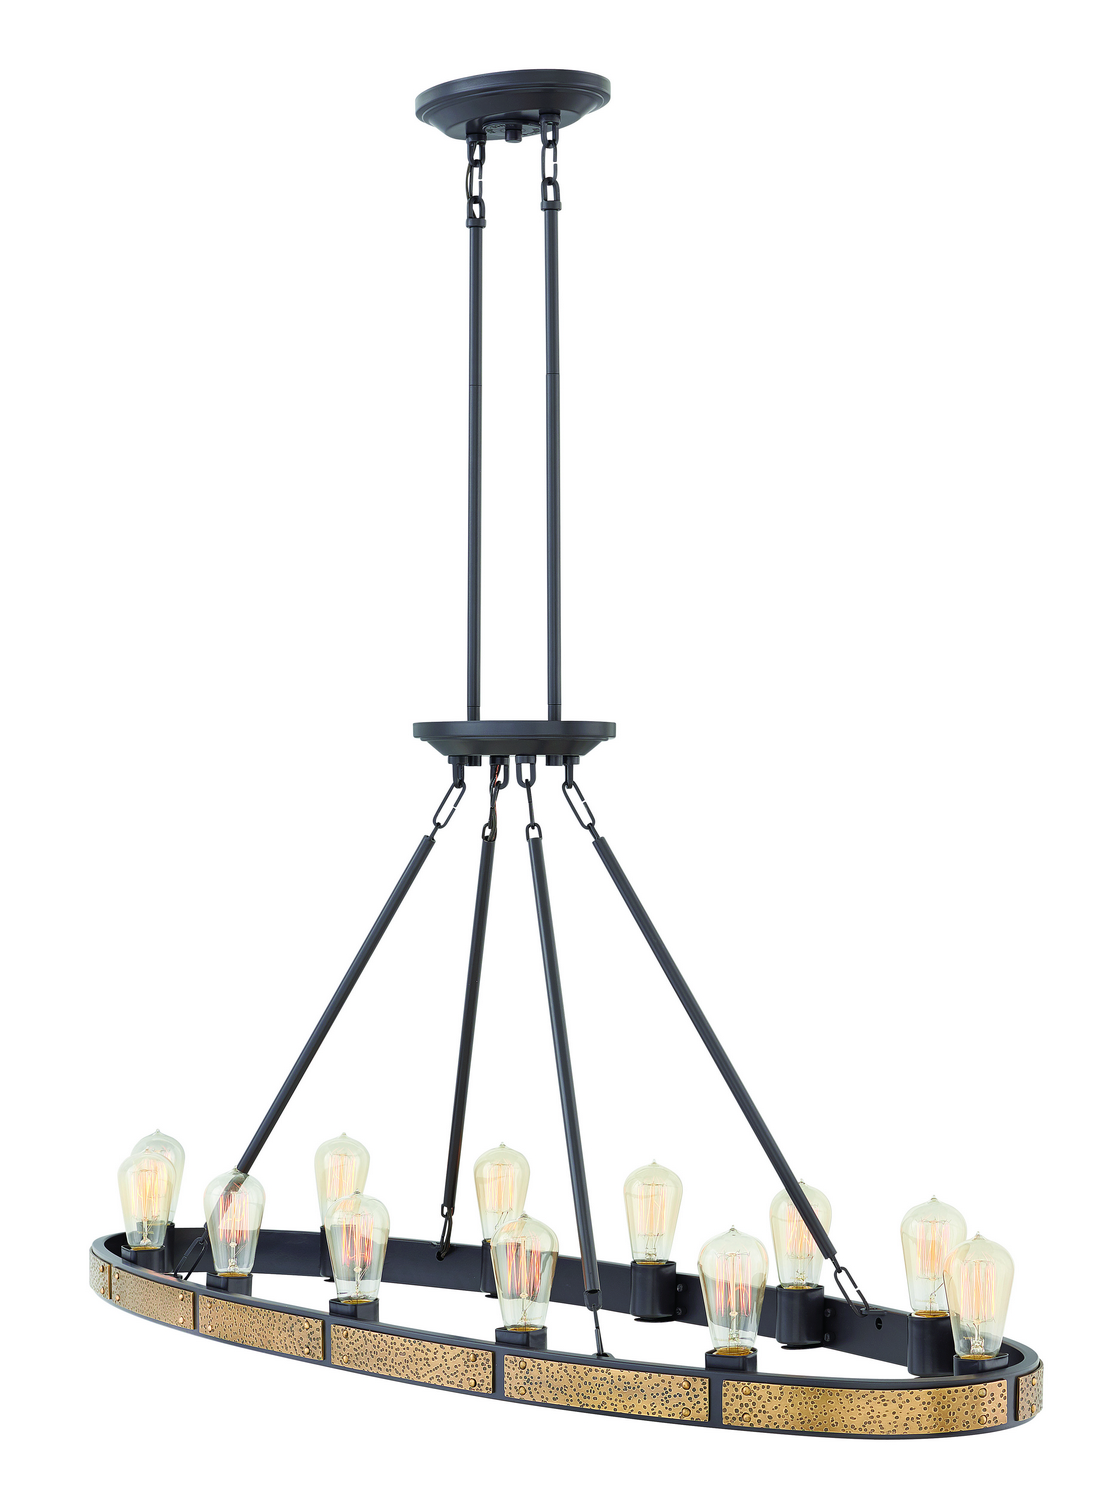 12 Light Linear Chandelier from the Everett collection by Hinkley 4396BZ